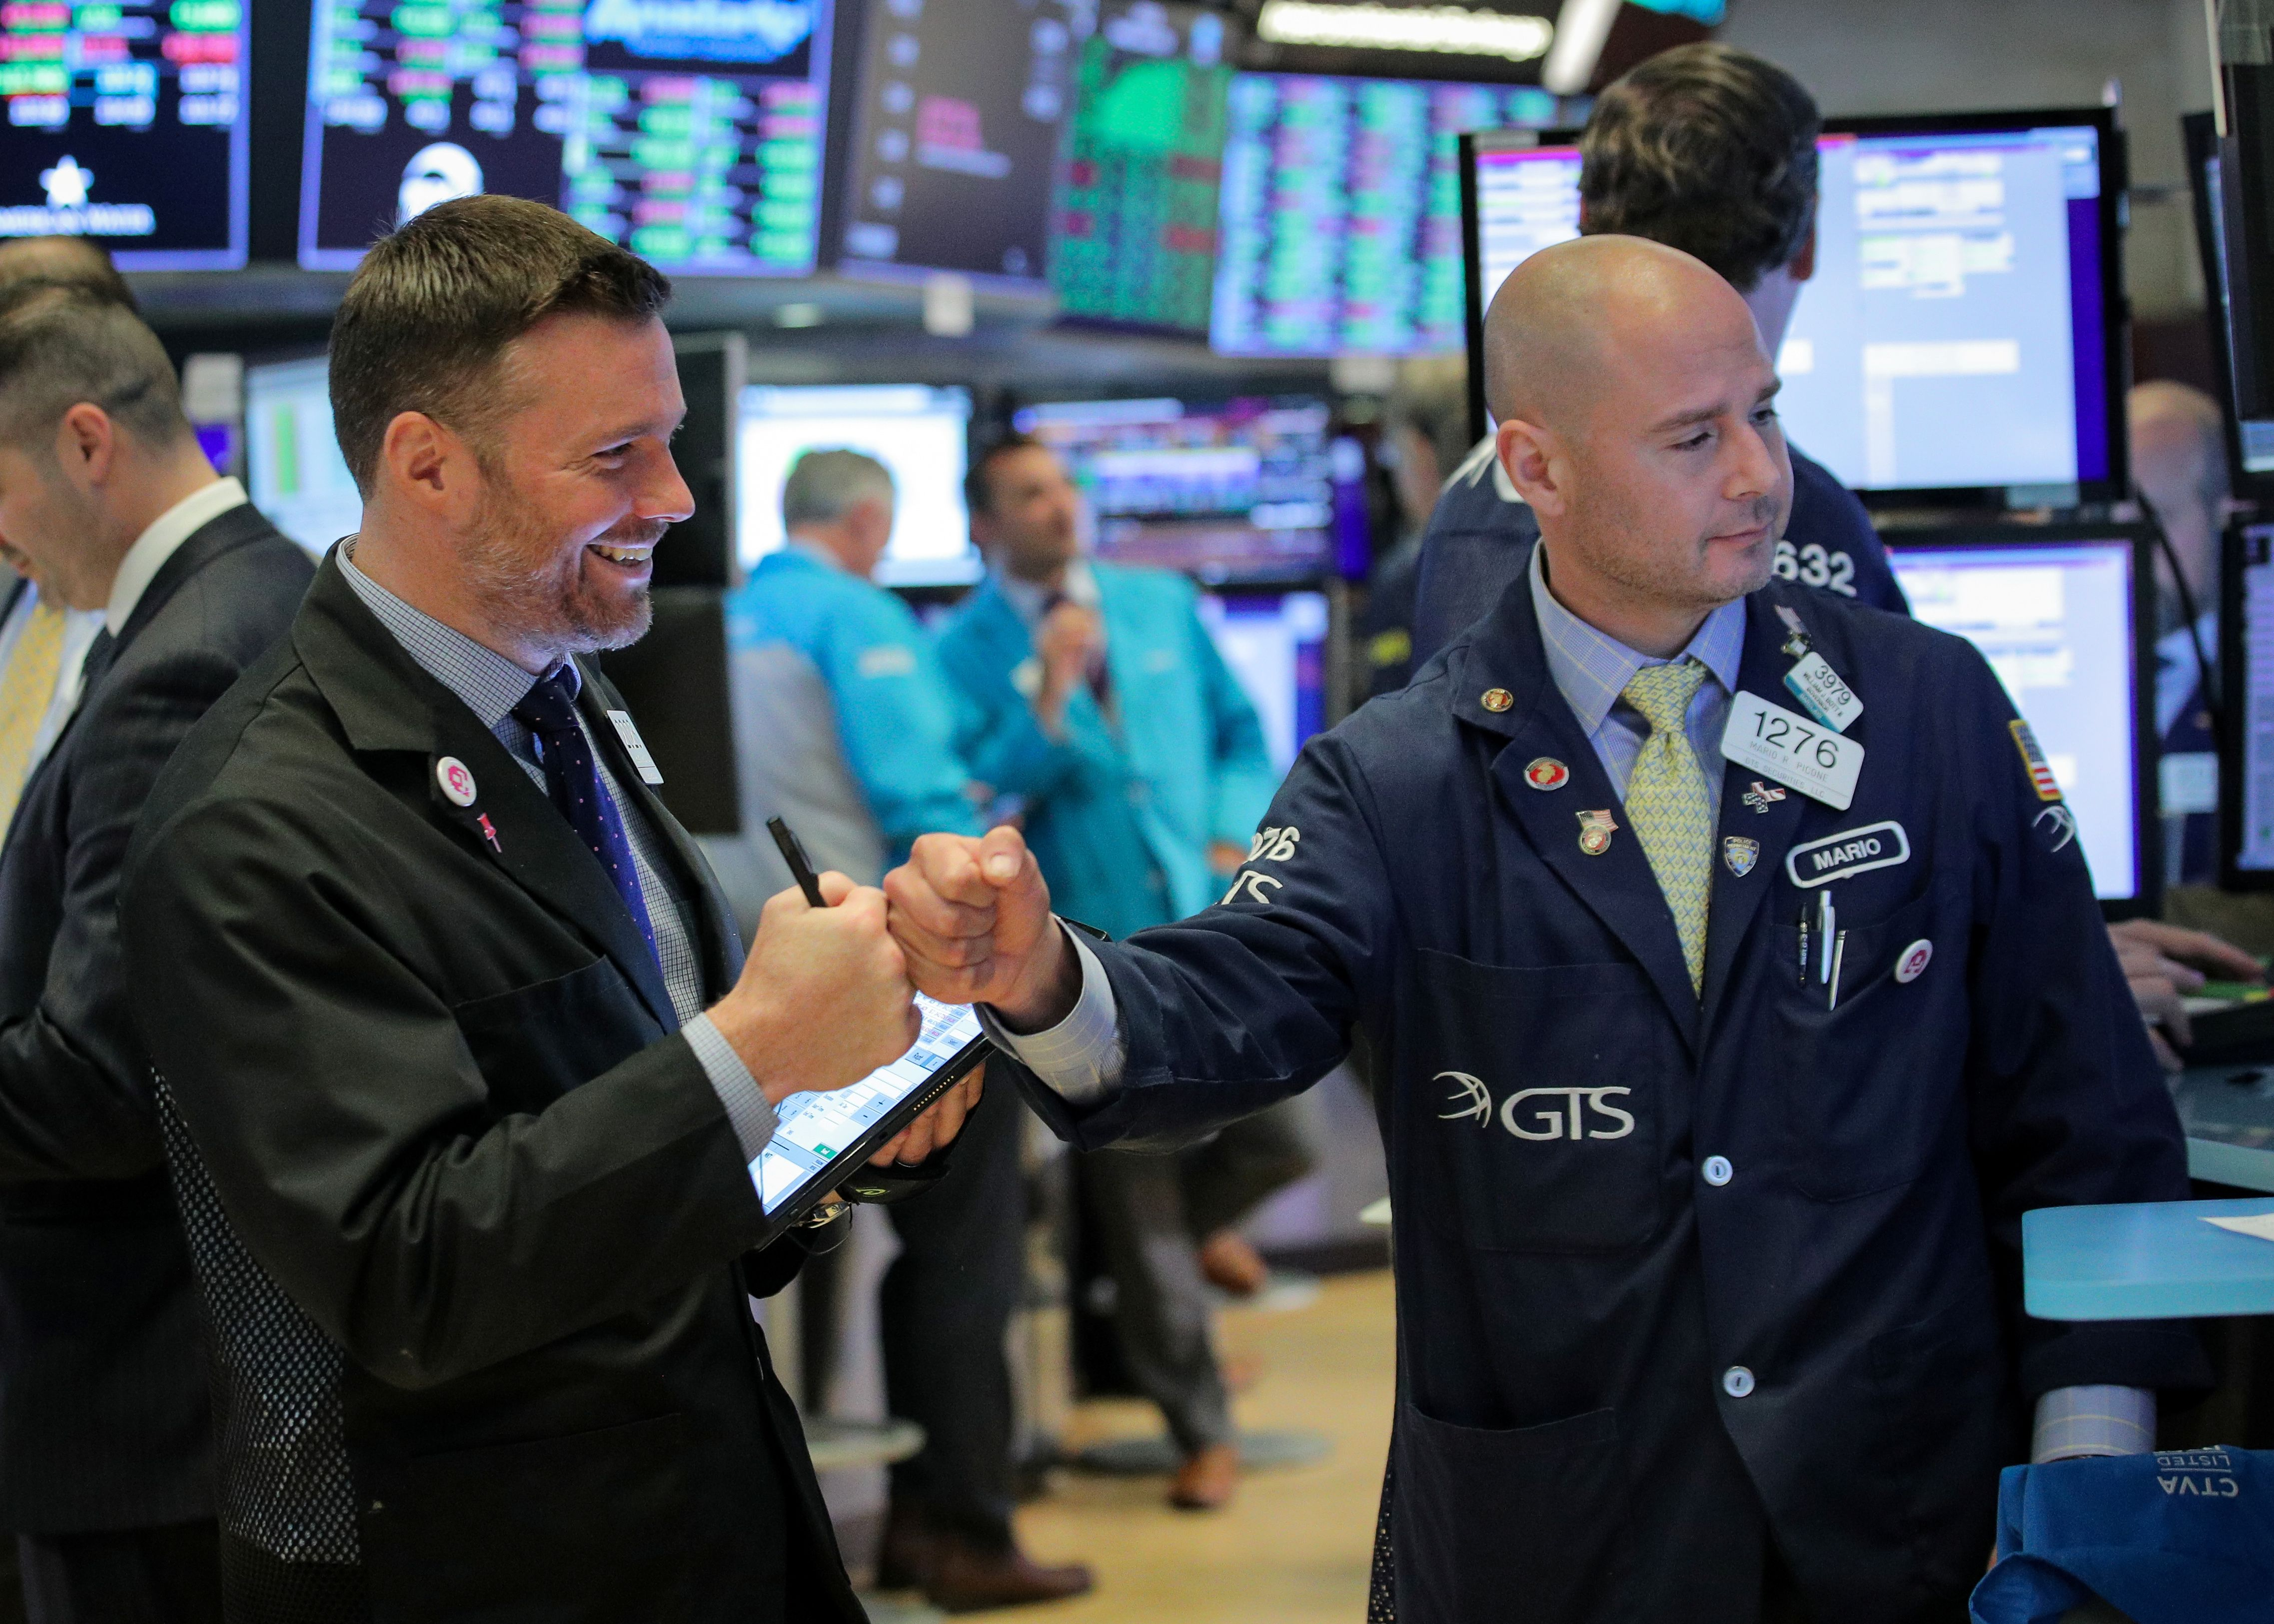 Stocks making biggest moves after hours: Shutterfly, Broadcom, Zynga